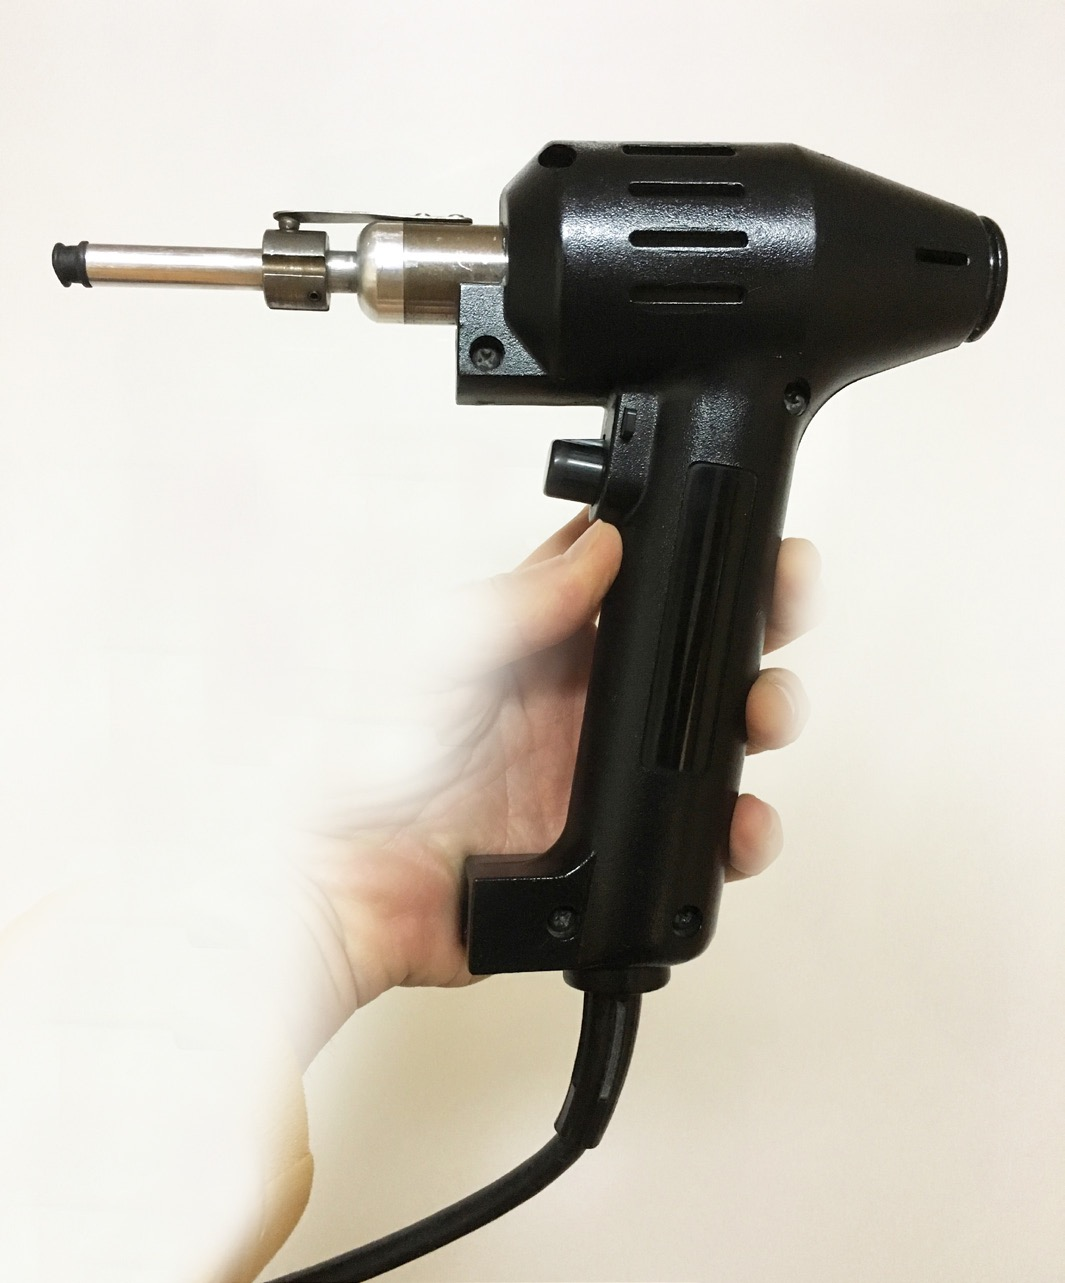 first hand held, electromechanical adjusting device